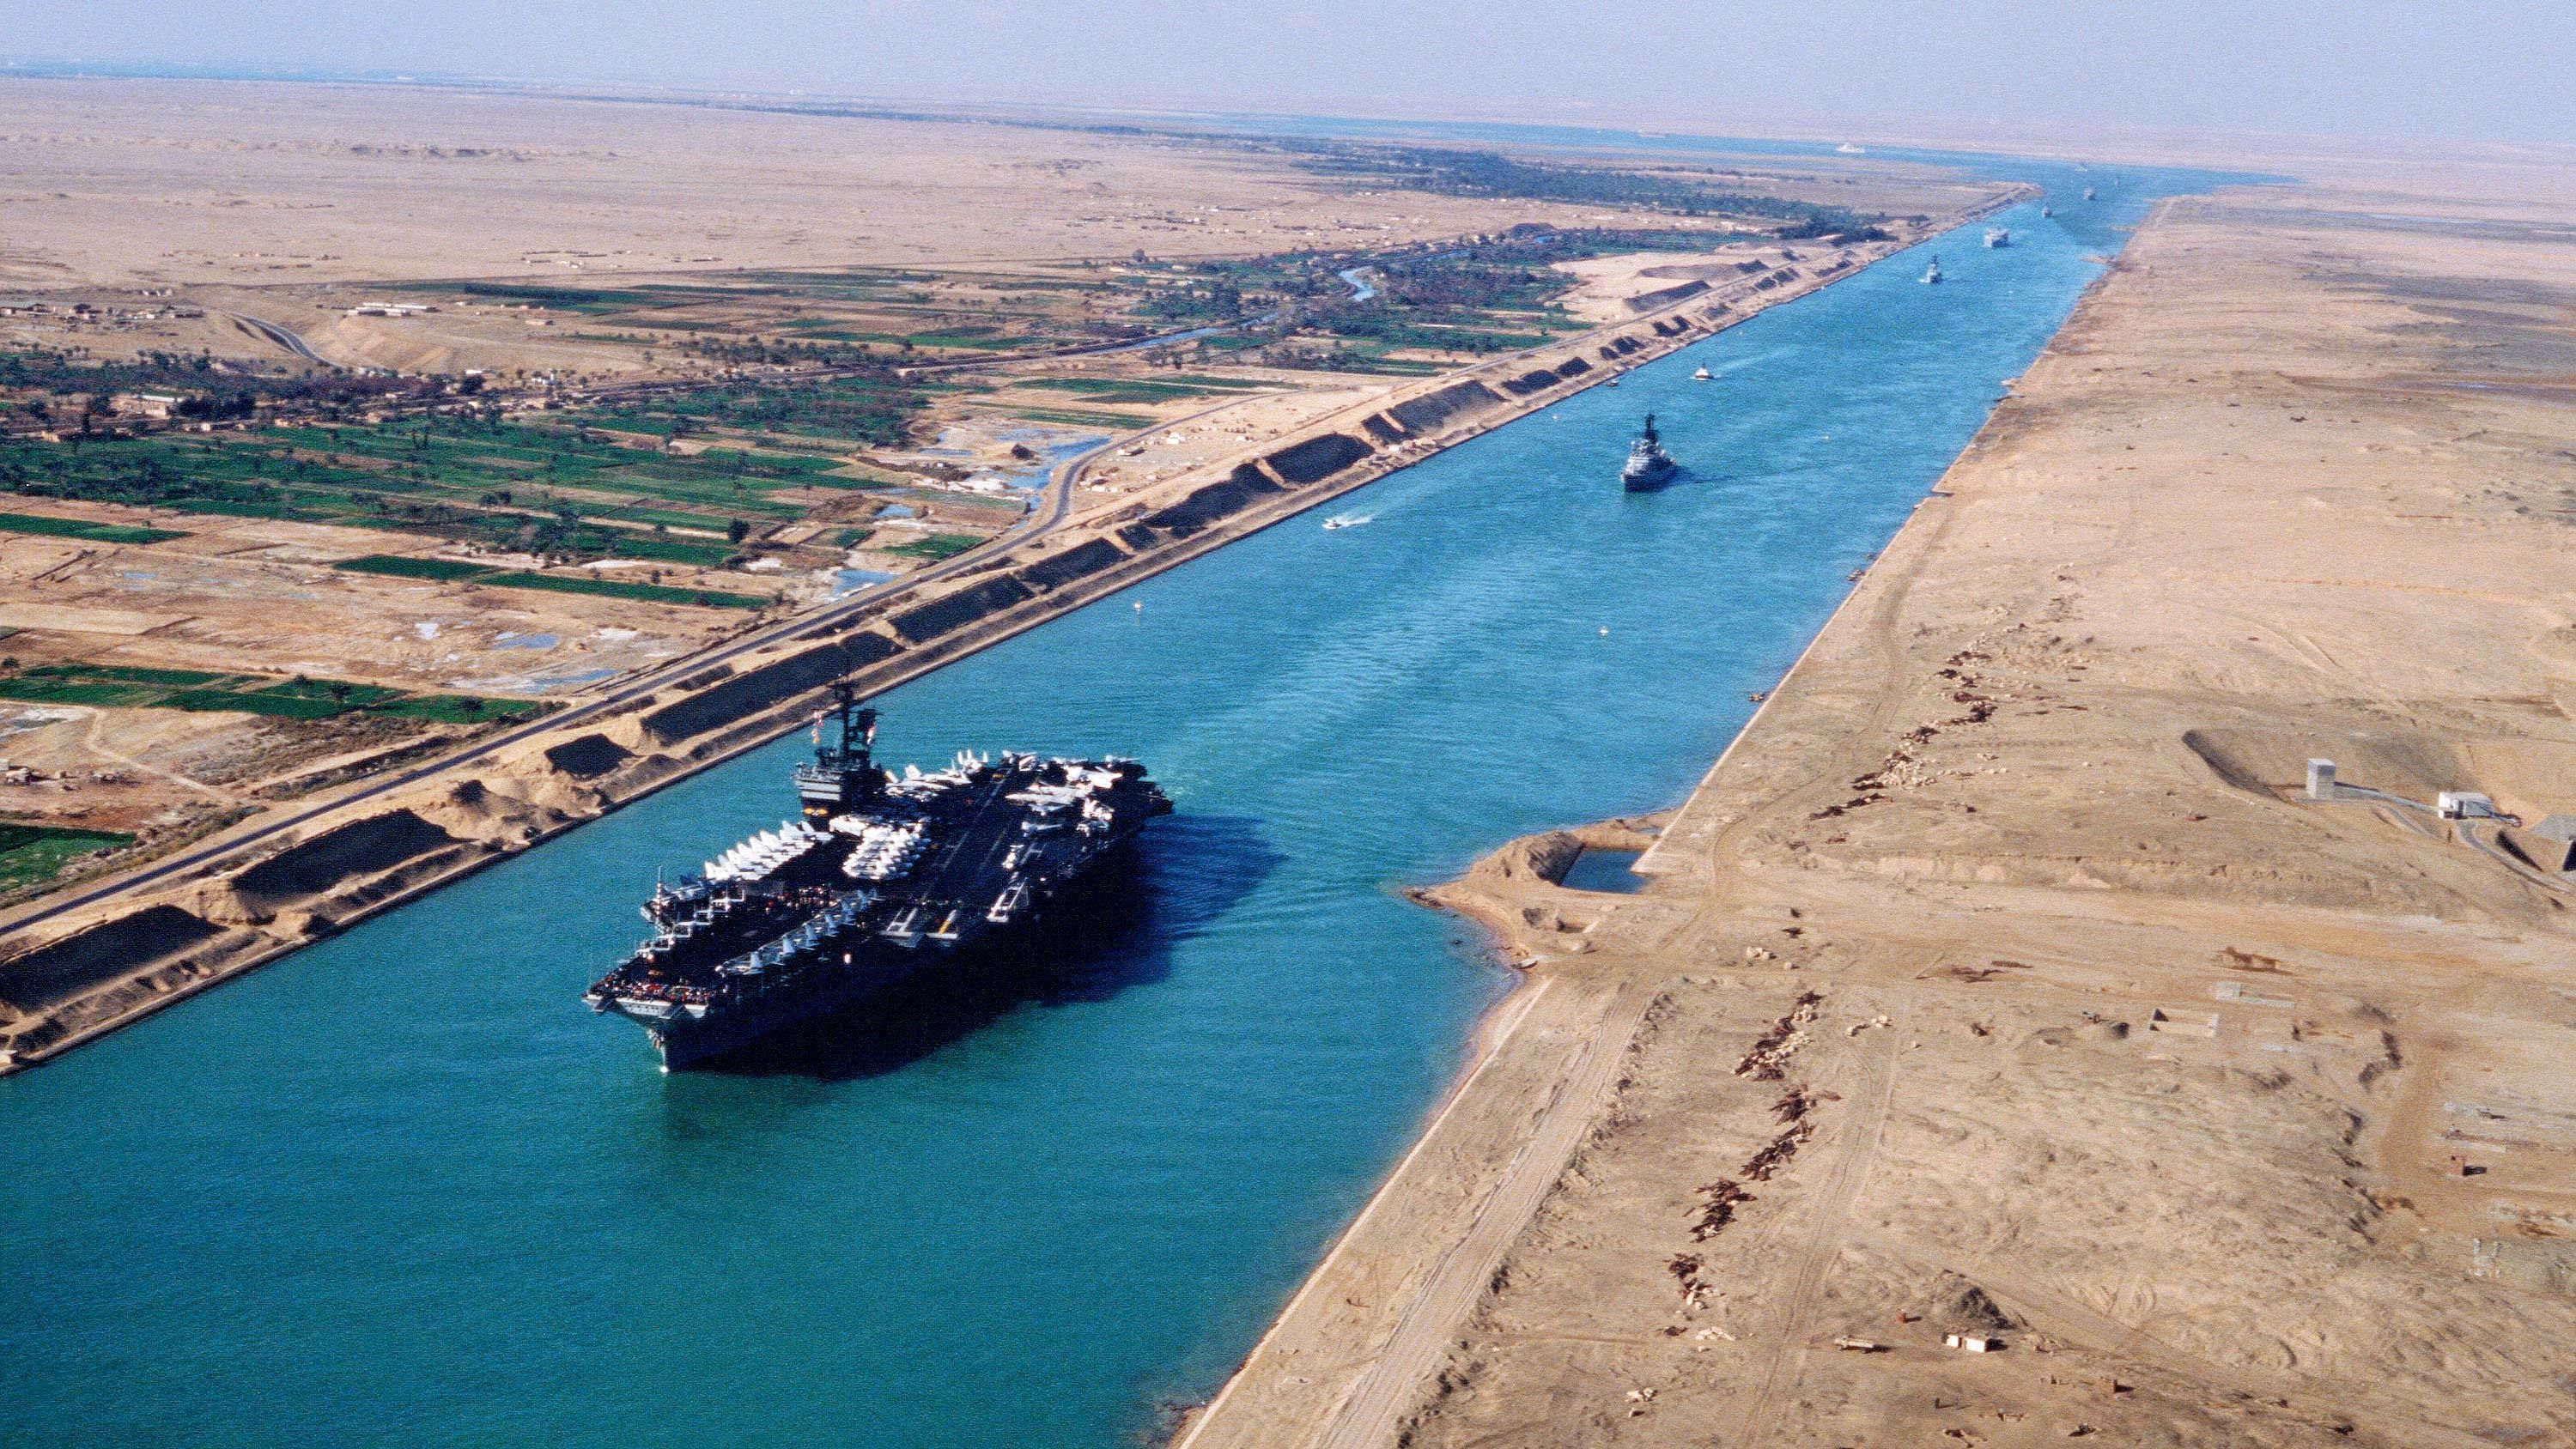 Boat ride at Suez Canal in Egypt